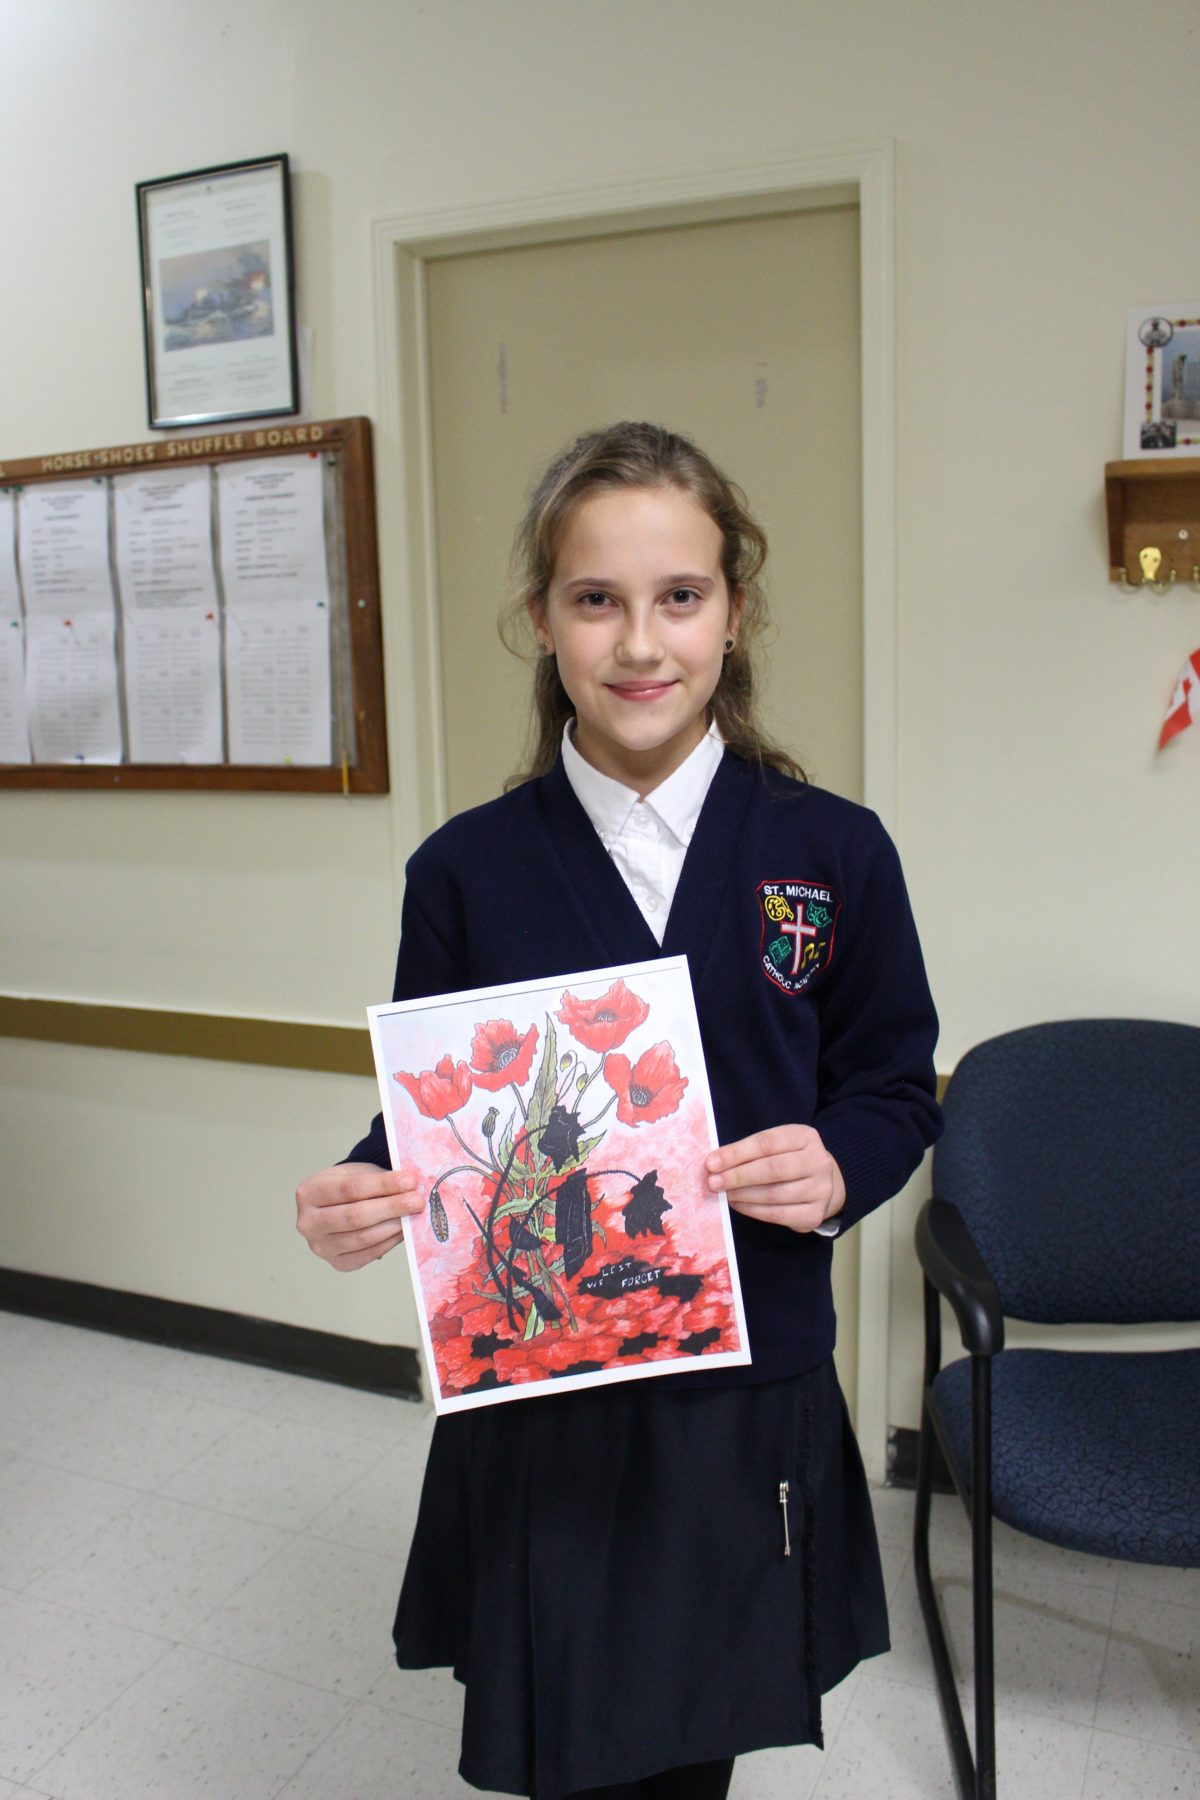 St. Michael student to meet the Queen thanks to the Royal Canadian Legion